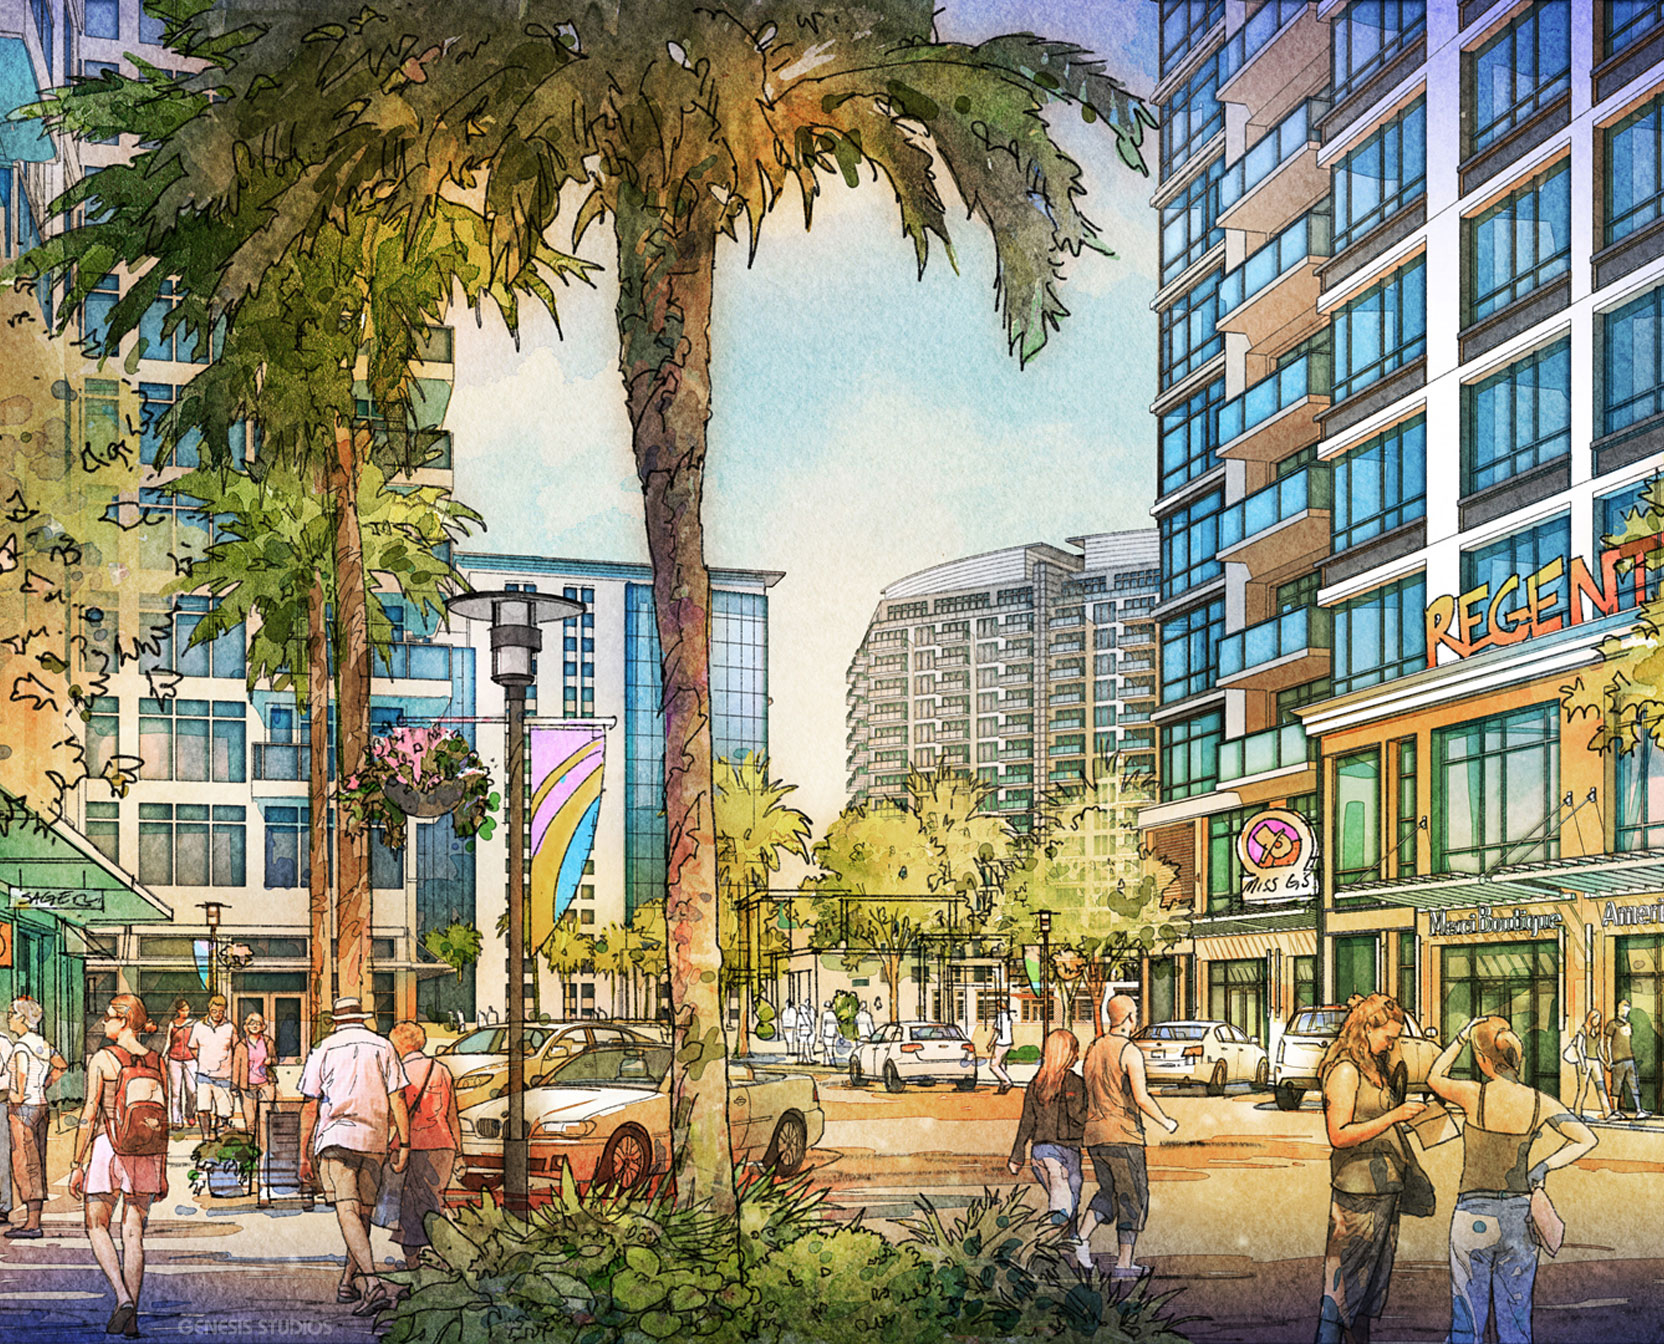 616067- Digital Watercolor Architectural Rendering of Sarasota Quay for Baker Barrios